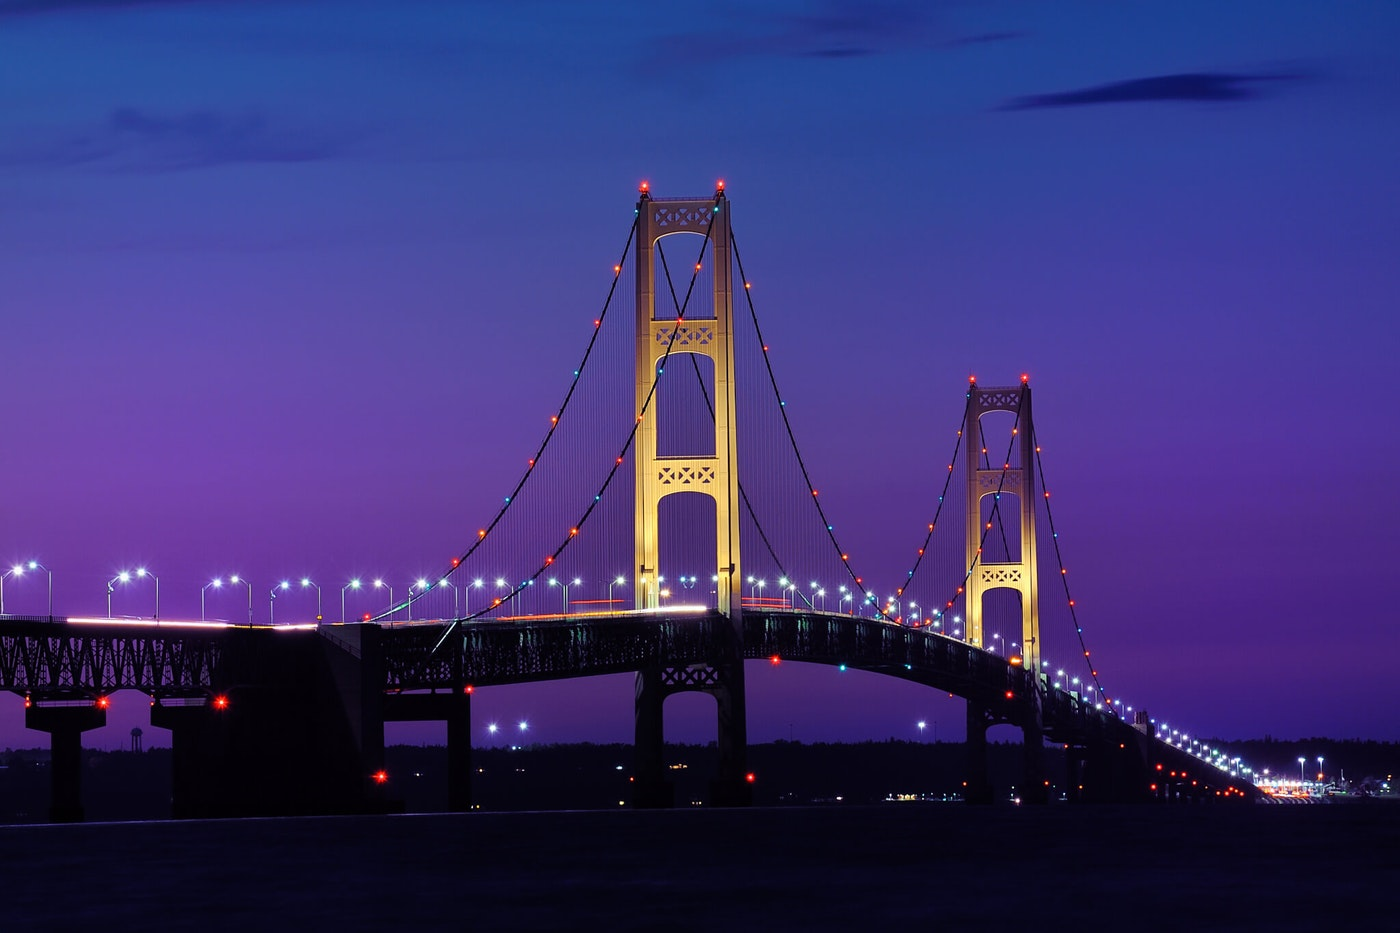 The Mackinac Bridge, also known as the Mighty Mac, spans the Straits of Mackinac, connecting Michigan's Lower and Upper Peninsulas.